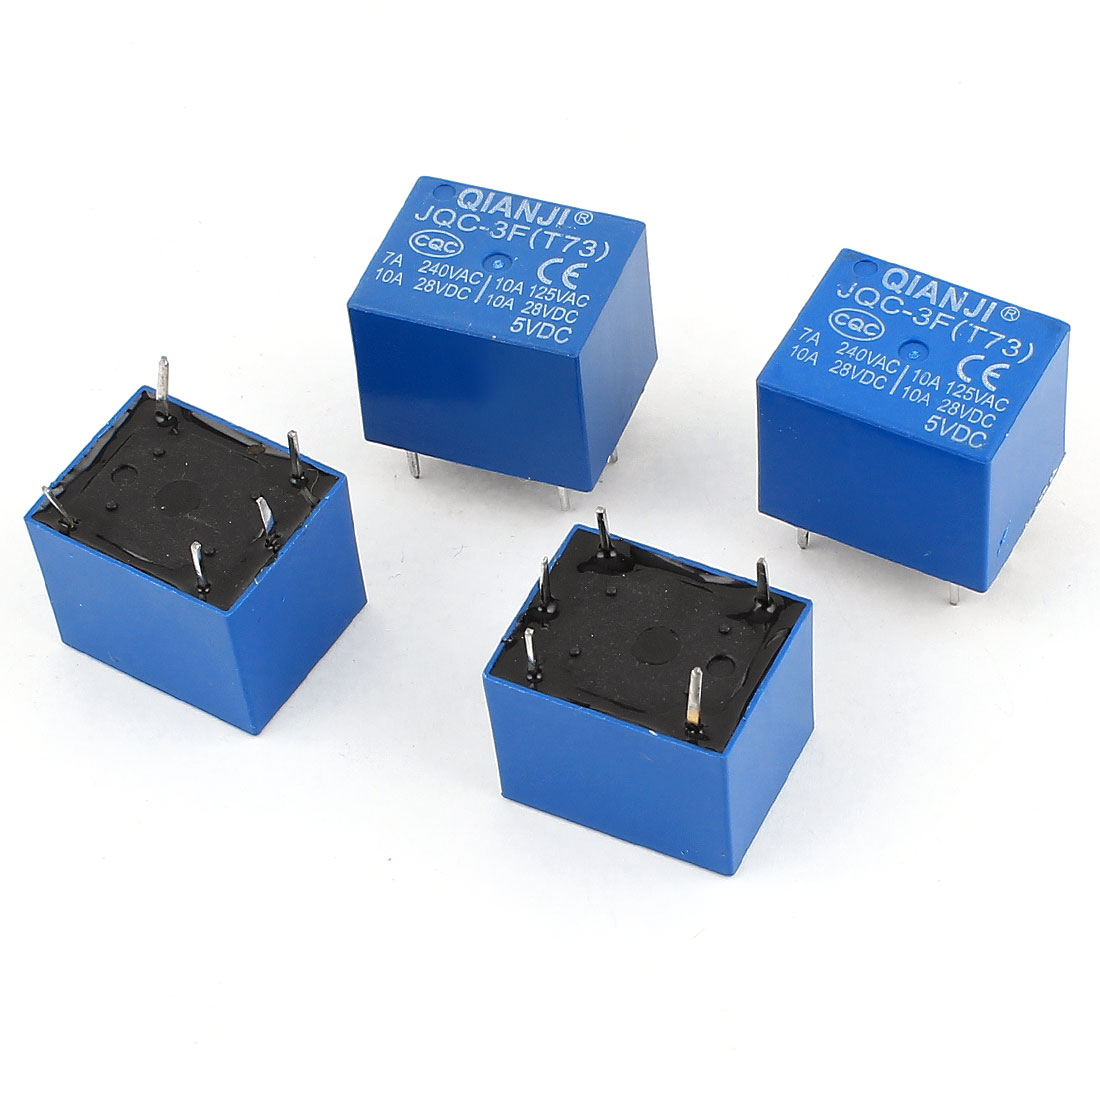 4 Pcs JQC-3F(T73) 5Pin SPST Power Relay 5V Coil DC 28V AC 125V 240V Load